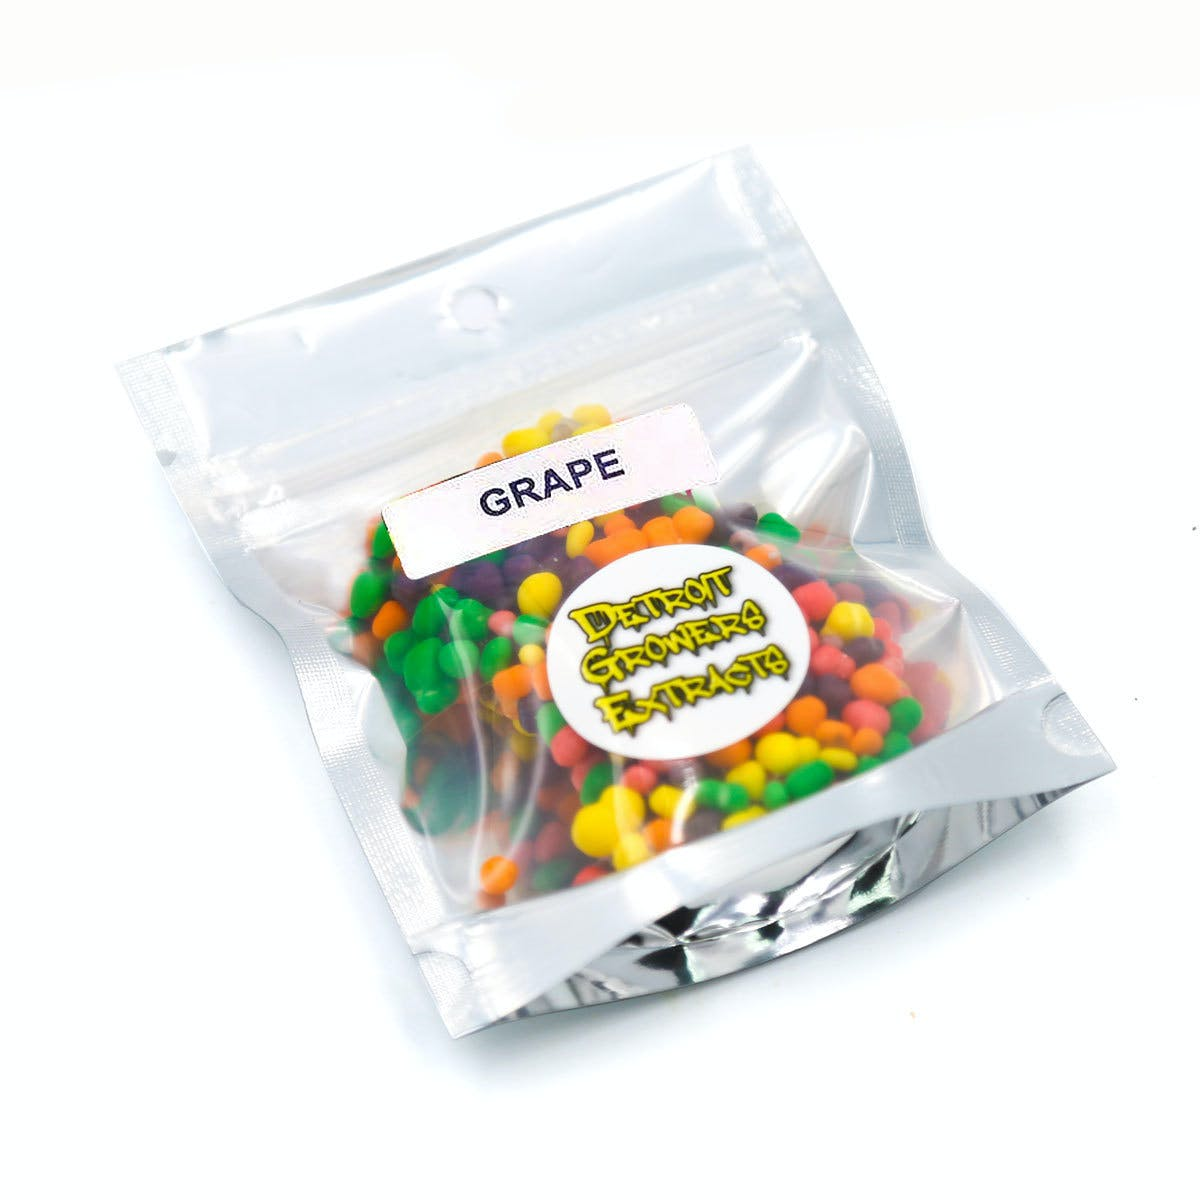 Detroit Growers Extracts Grape Nerds Rope 100mg Reviews Weedmaps